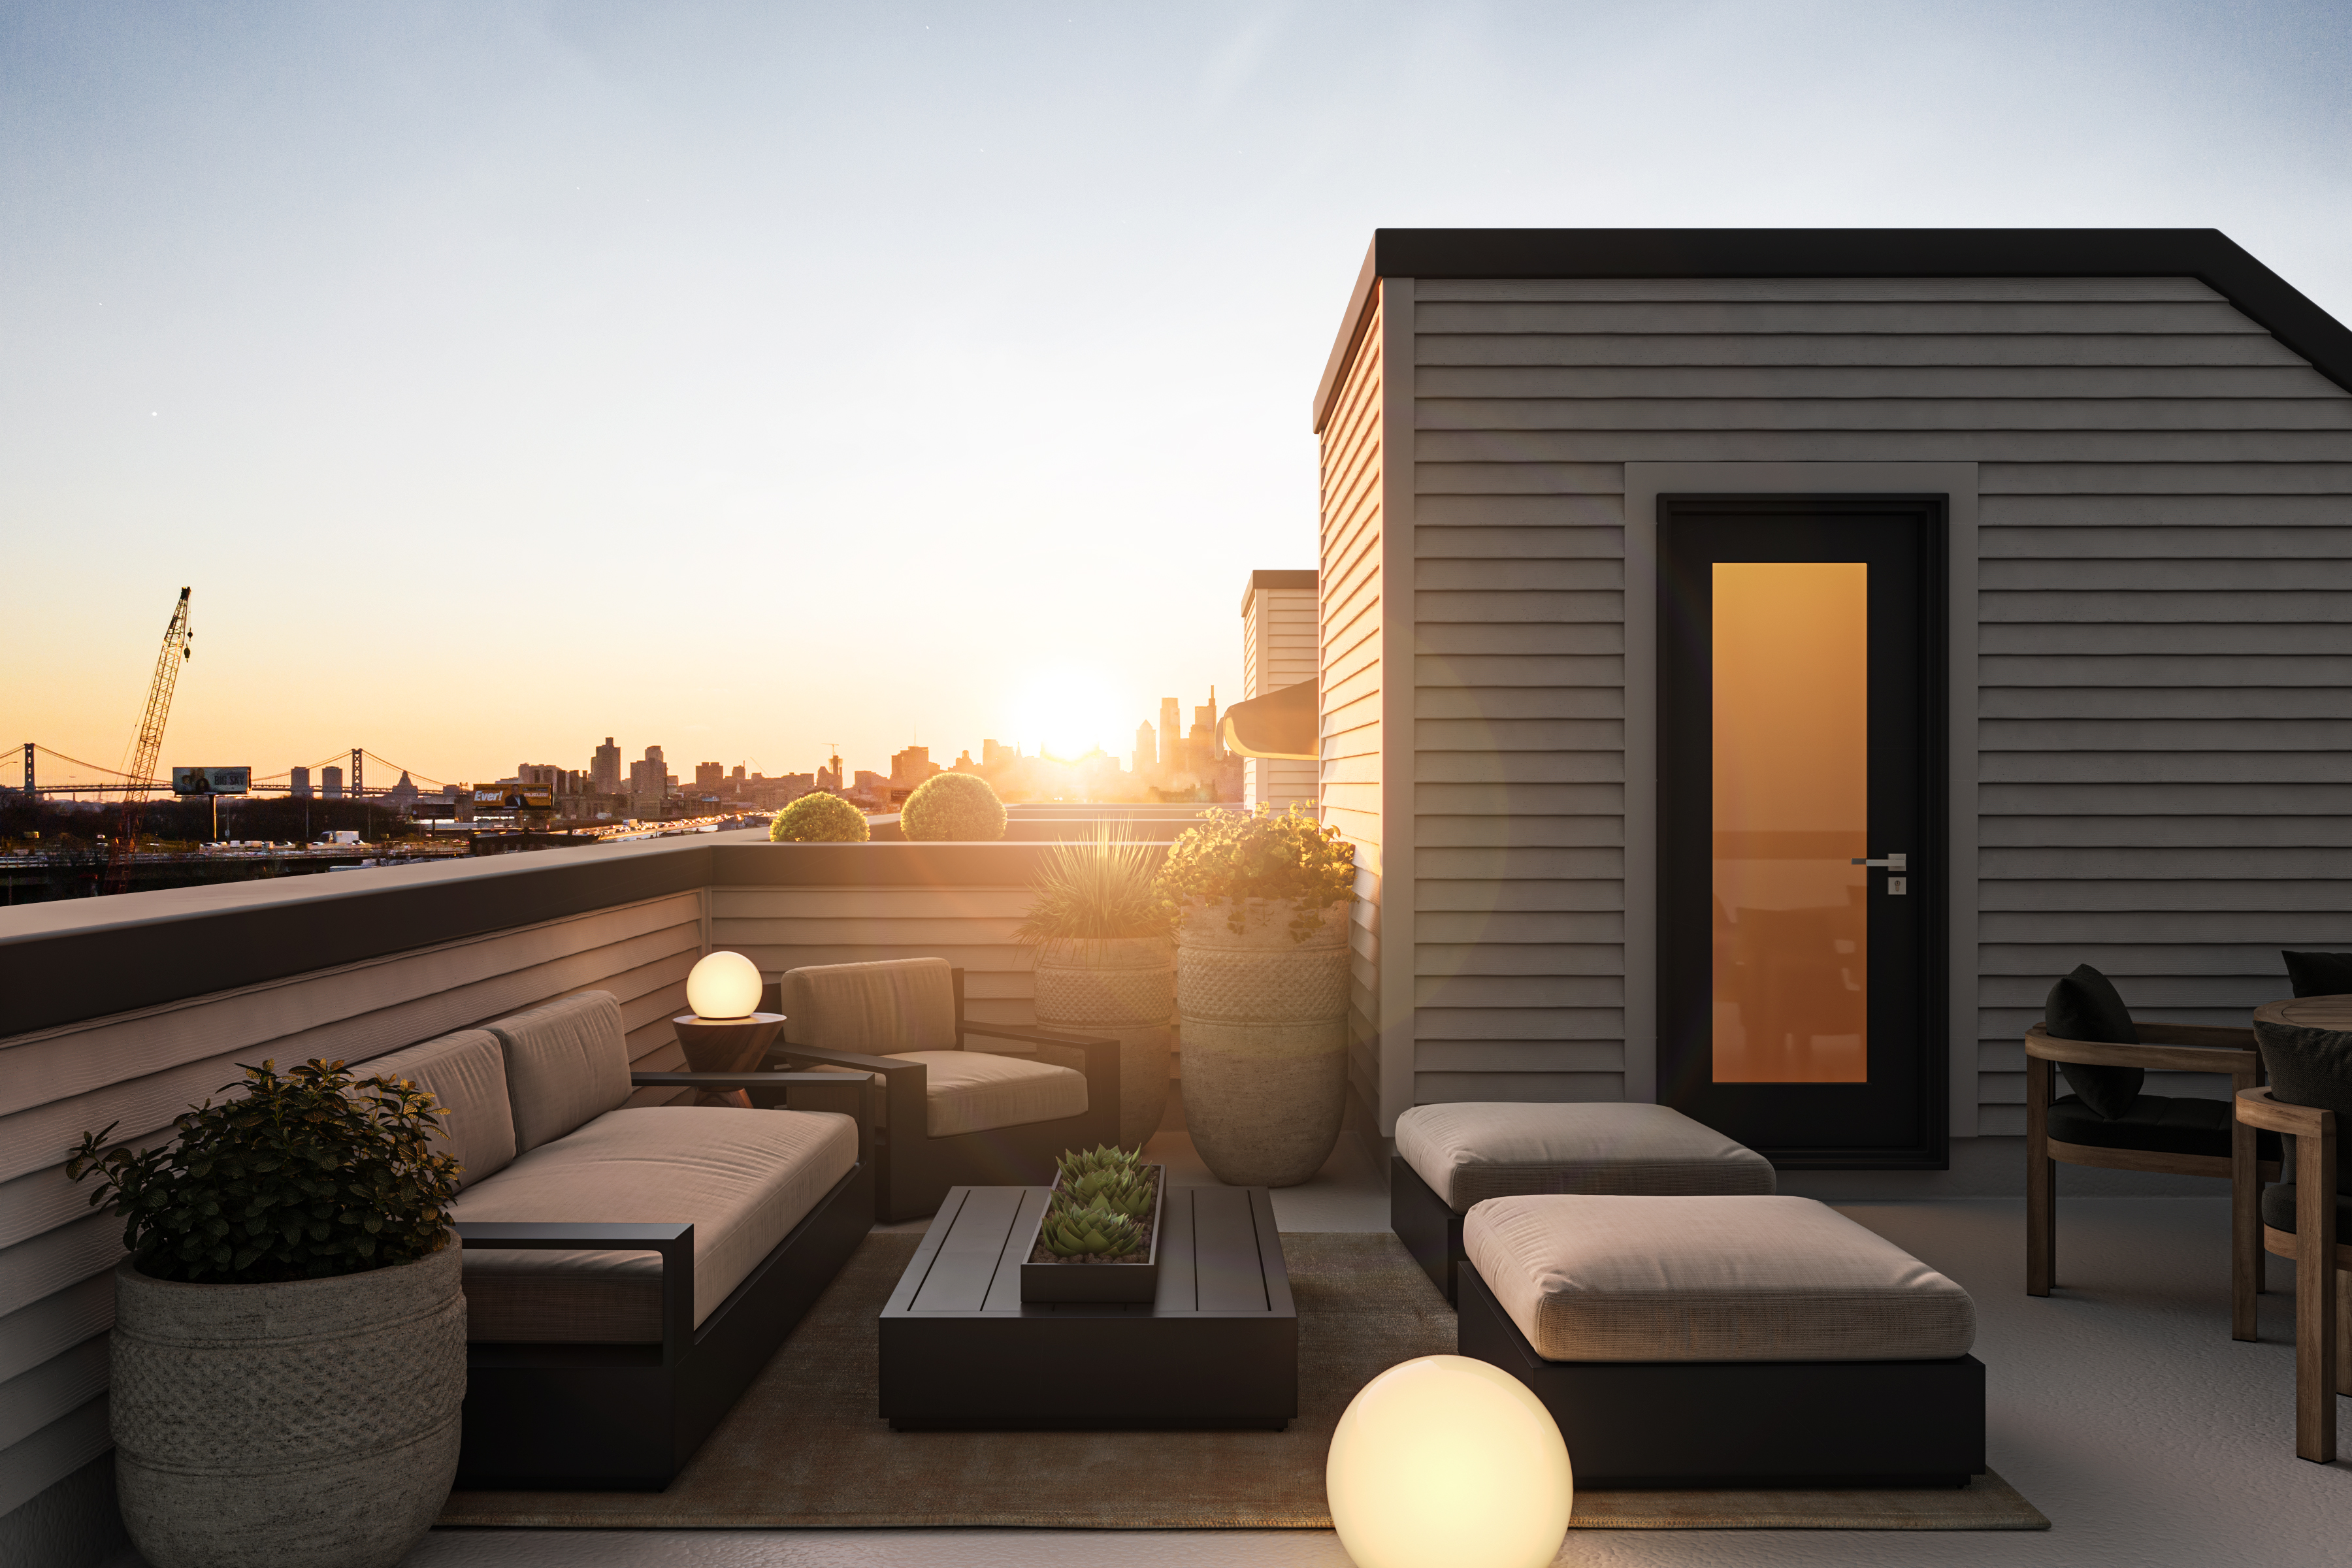 A photorealistic rendering of a roof deck